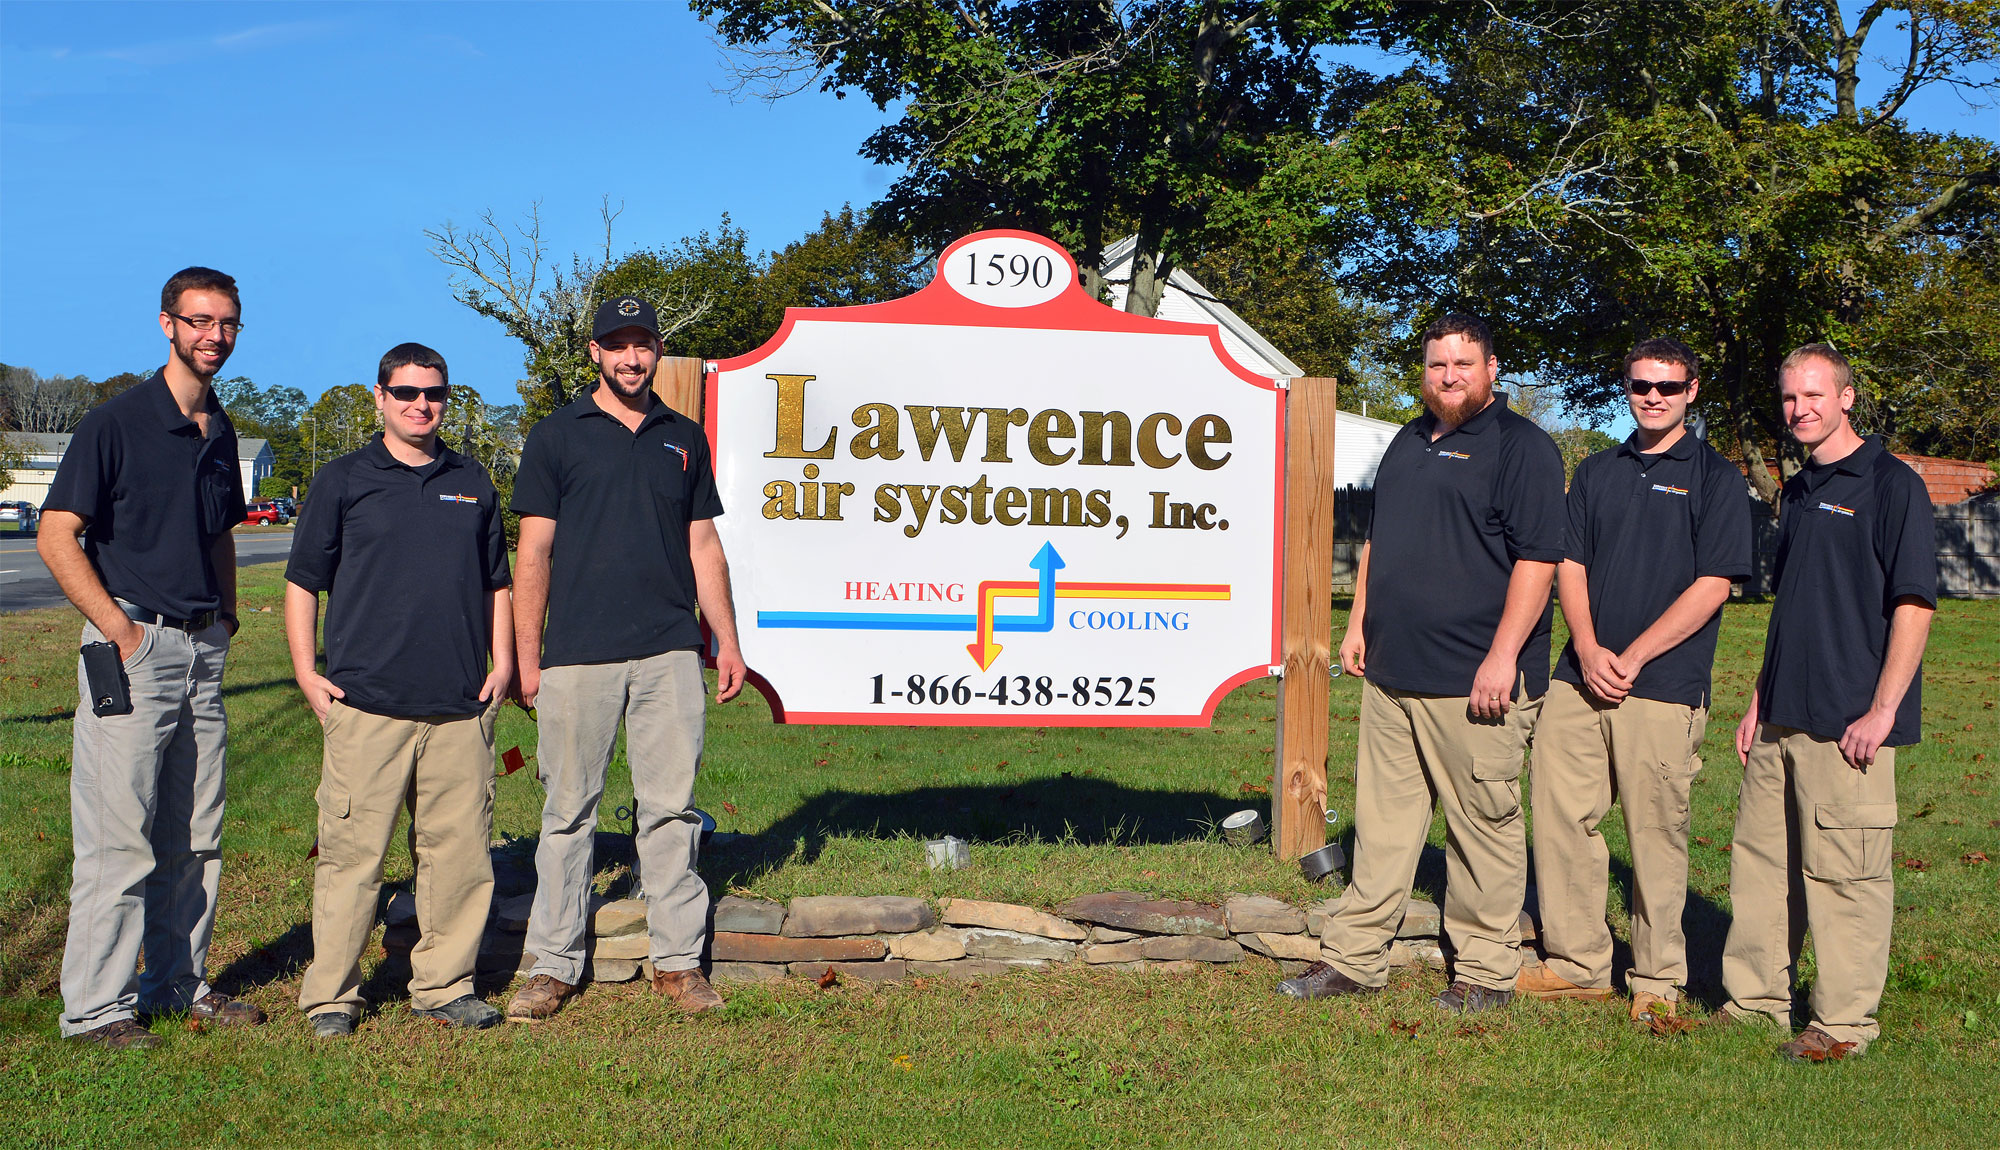 MTTI HVAC Graduates employed at Lawrence Air Systems in Seekonk, MA